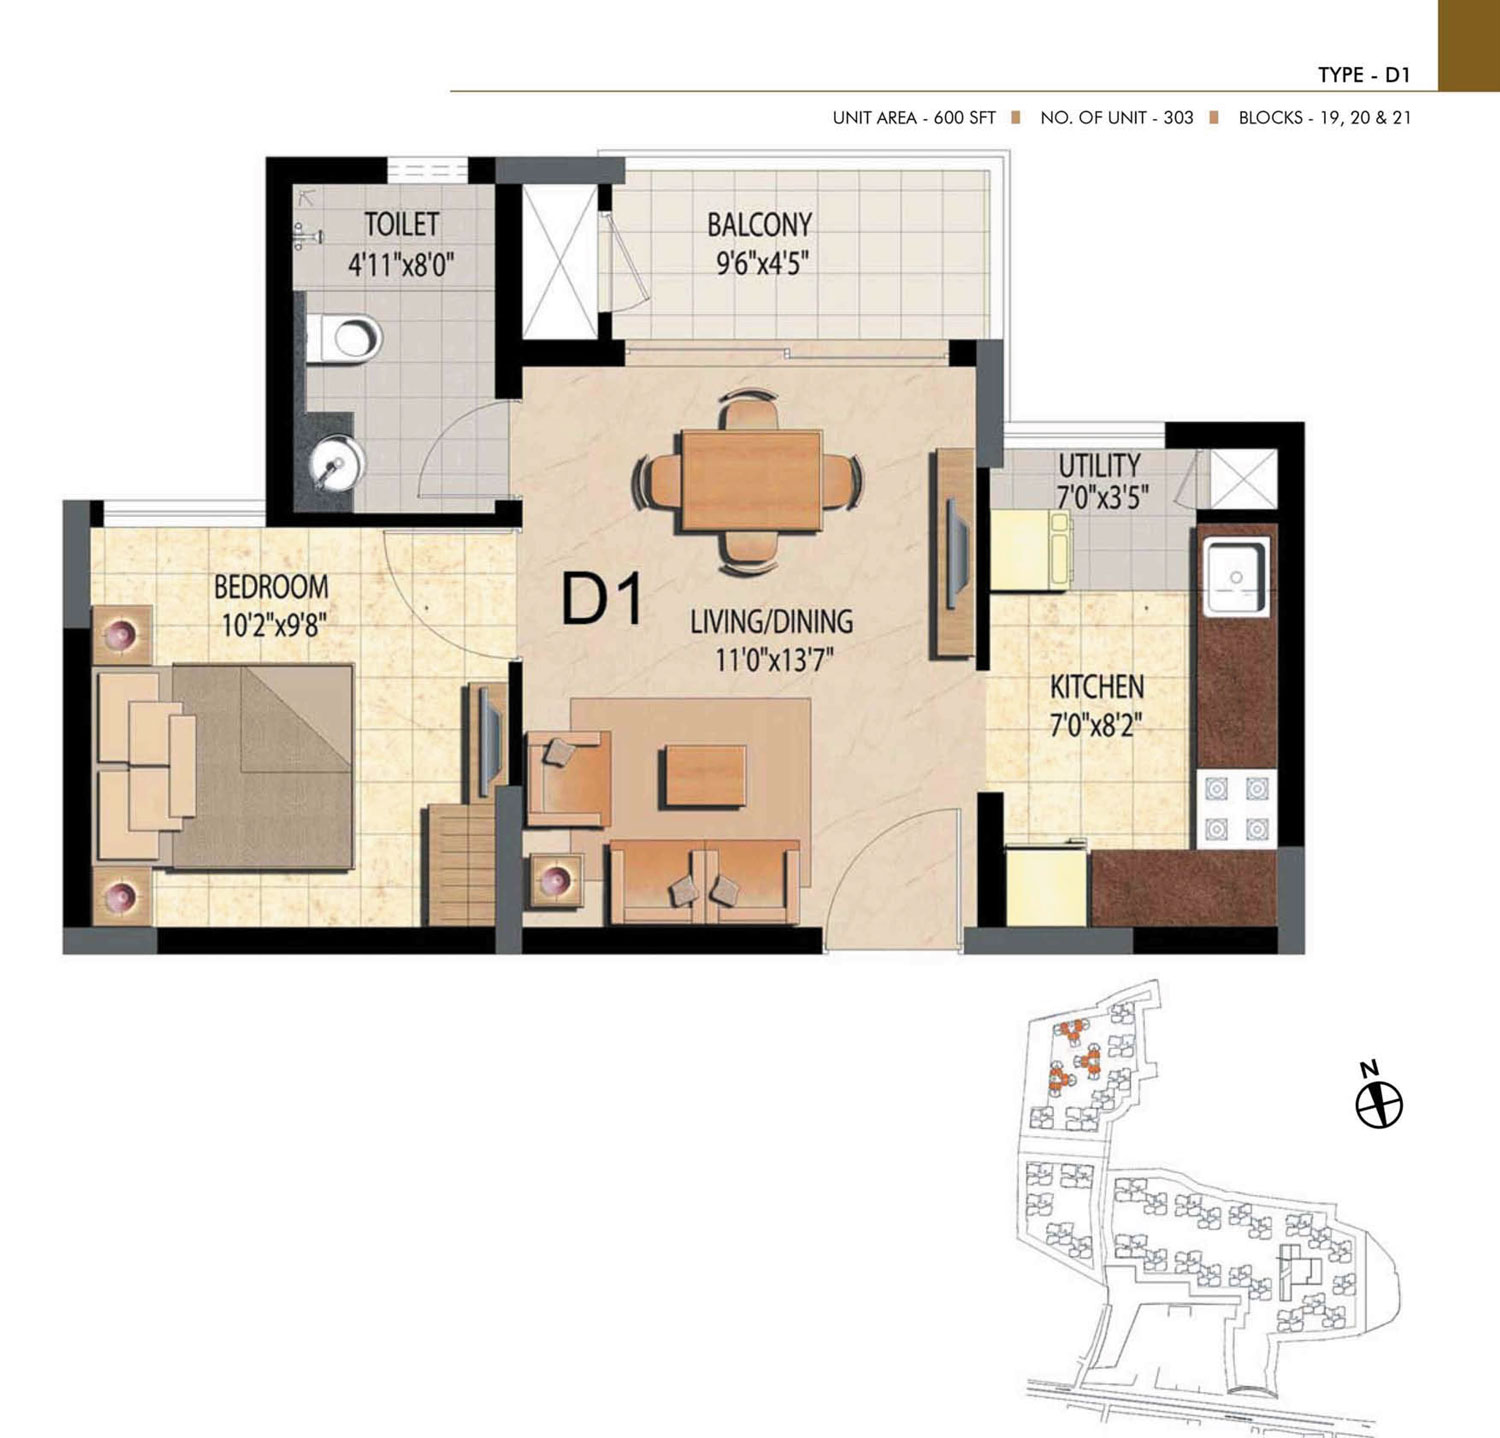 Type D1 - 1 Bed - 600 Sq Ft